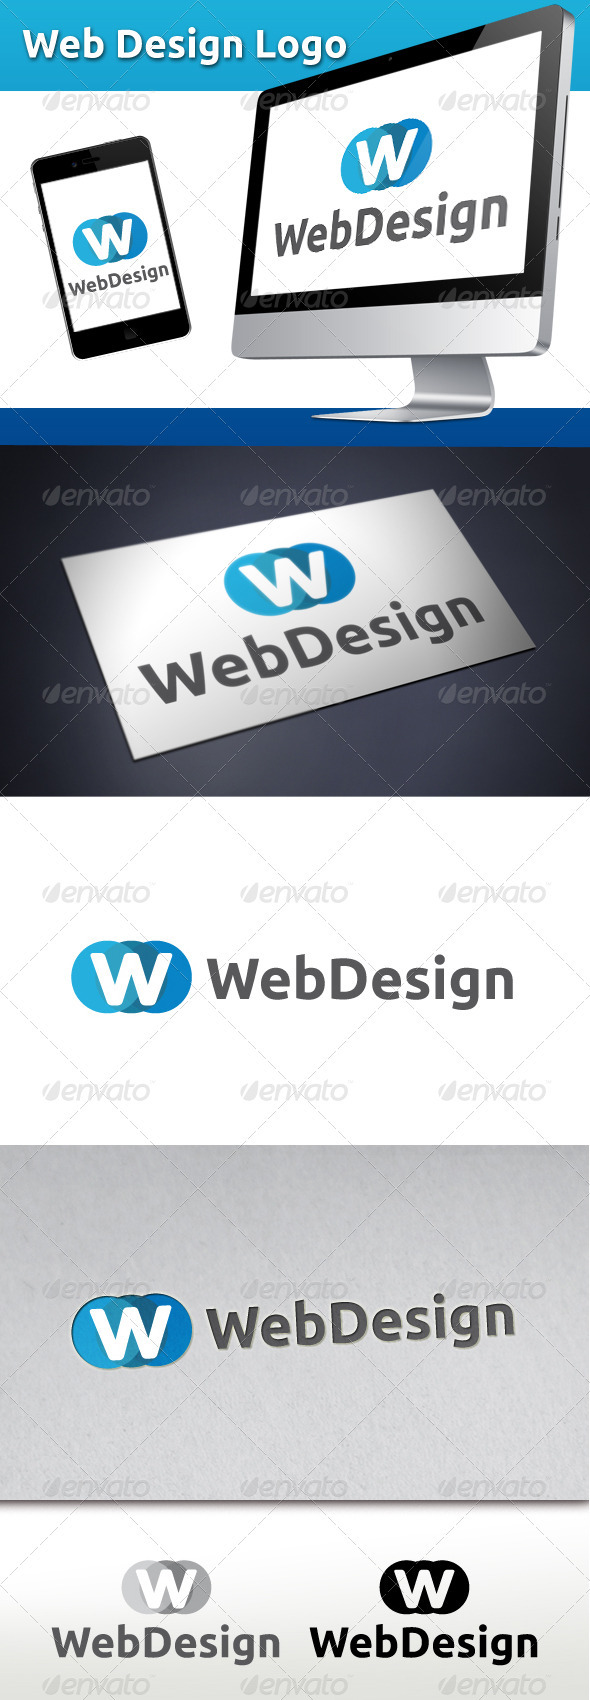 GraphicRiver Web Design Logo 1 3279340